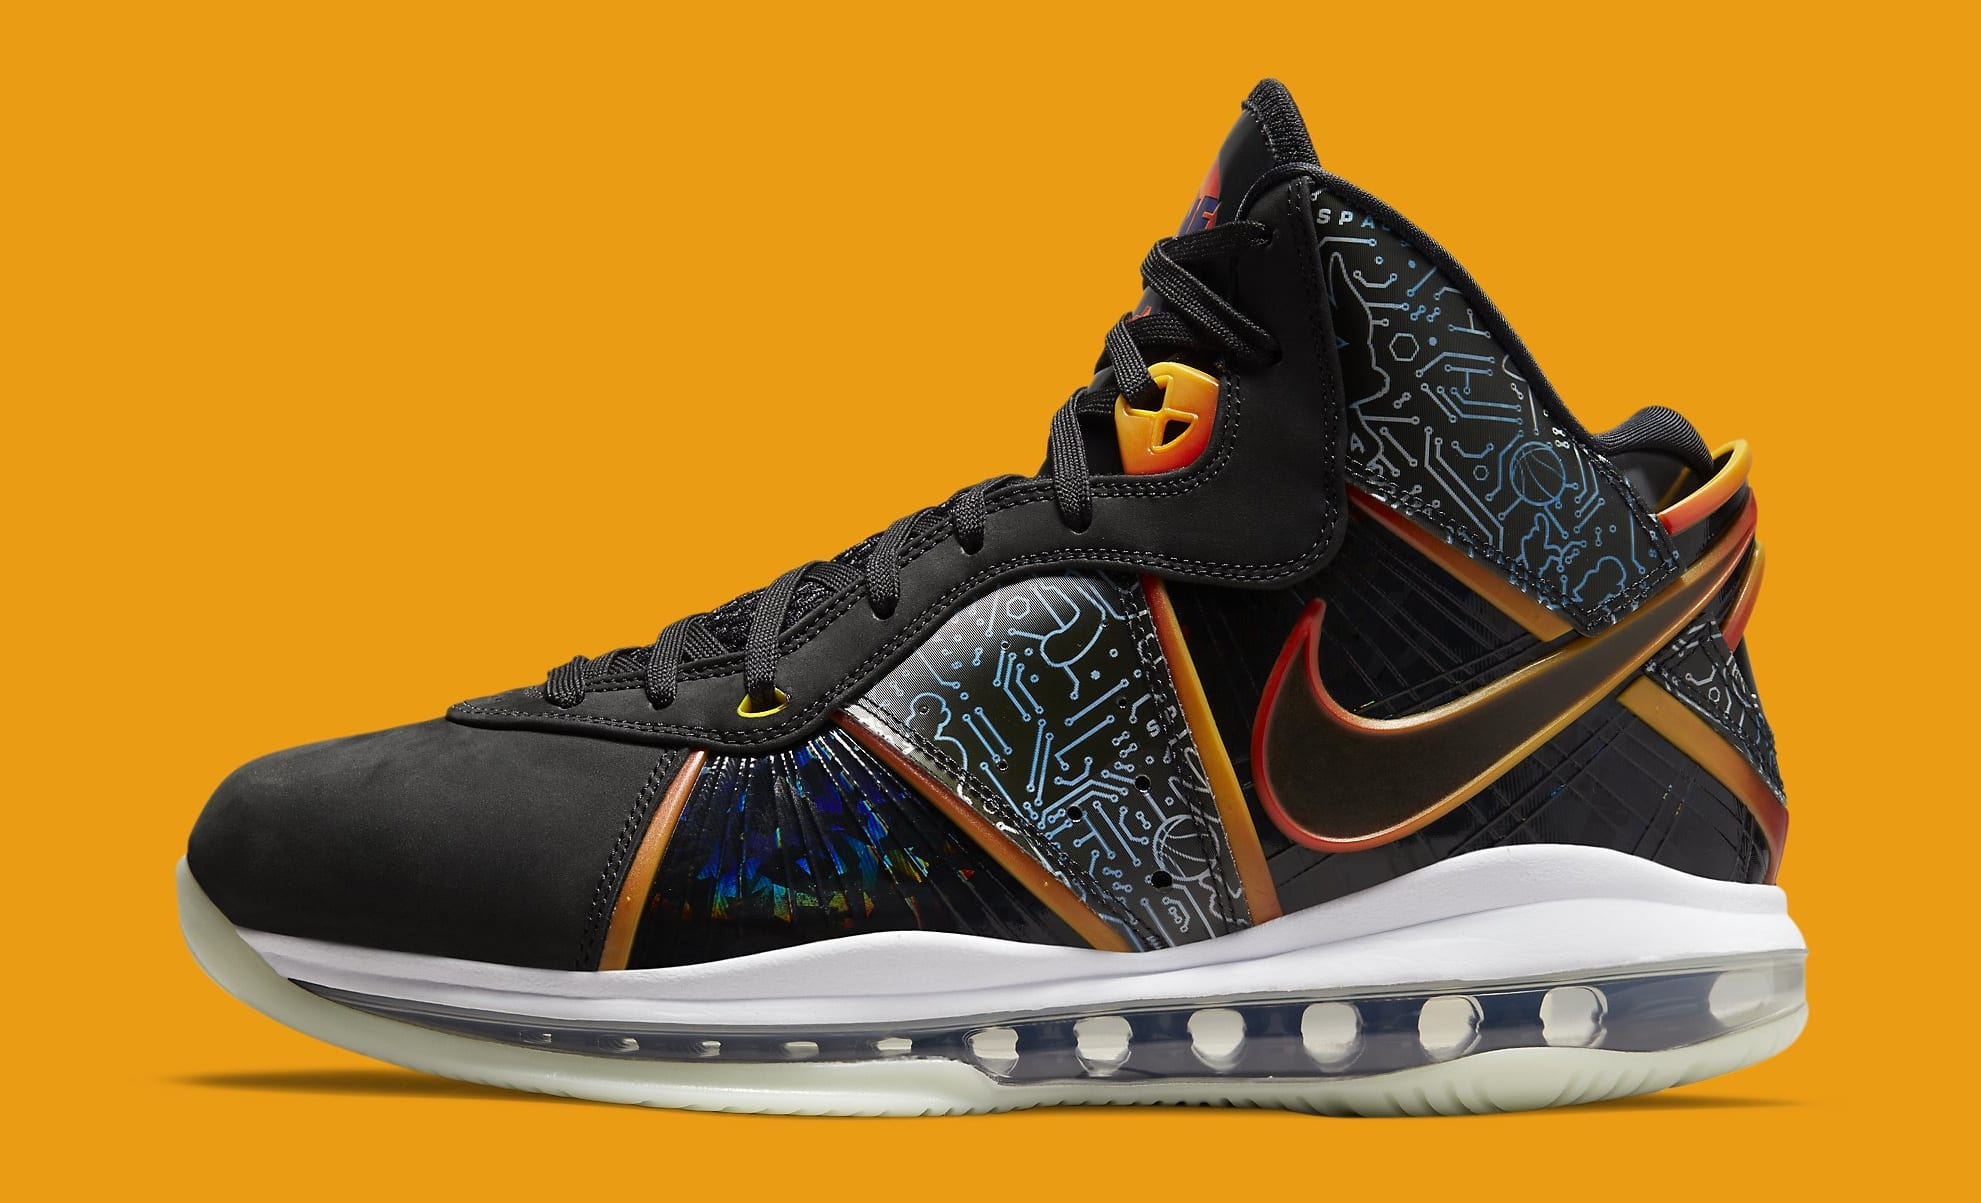 Nike LeBron 8 'Space Jam' DB1732-001 Lateral